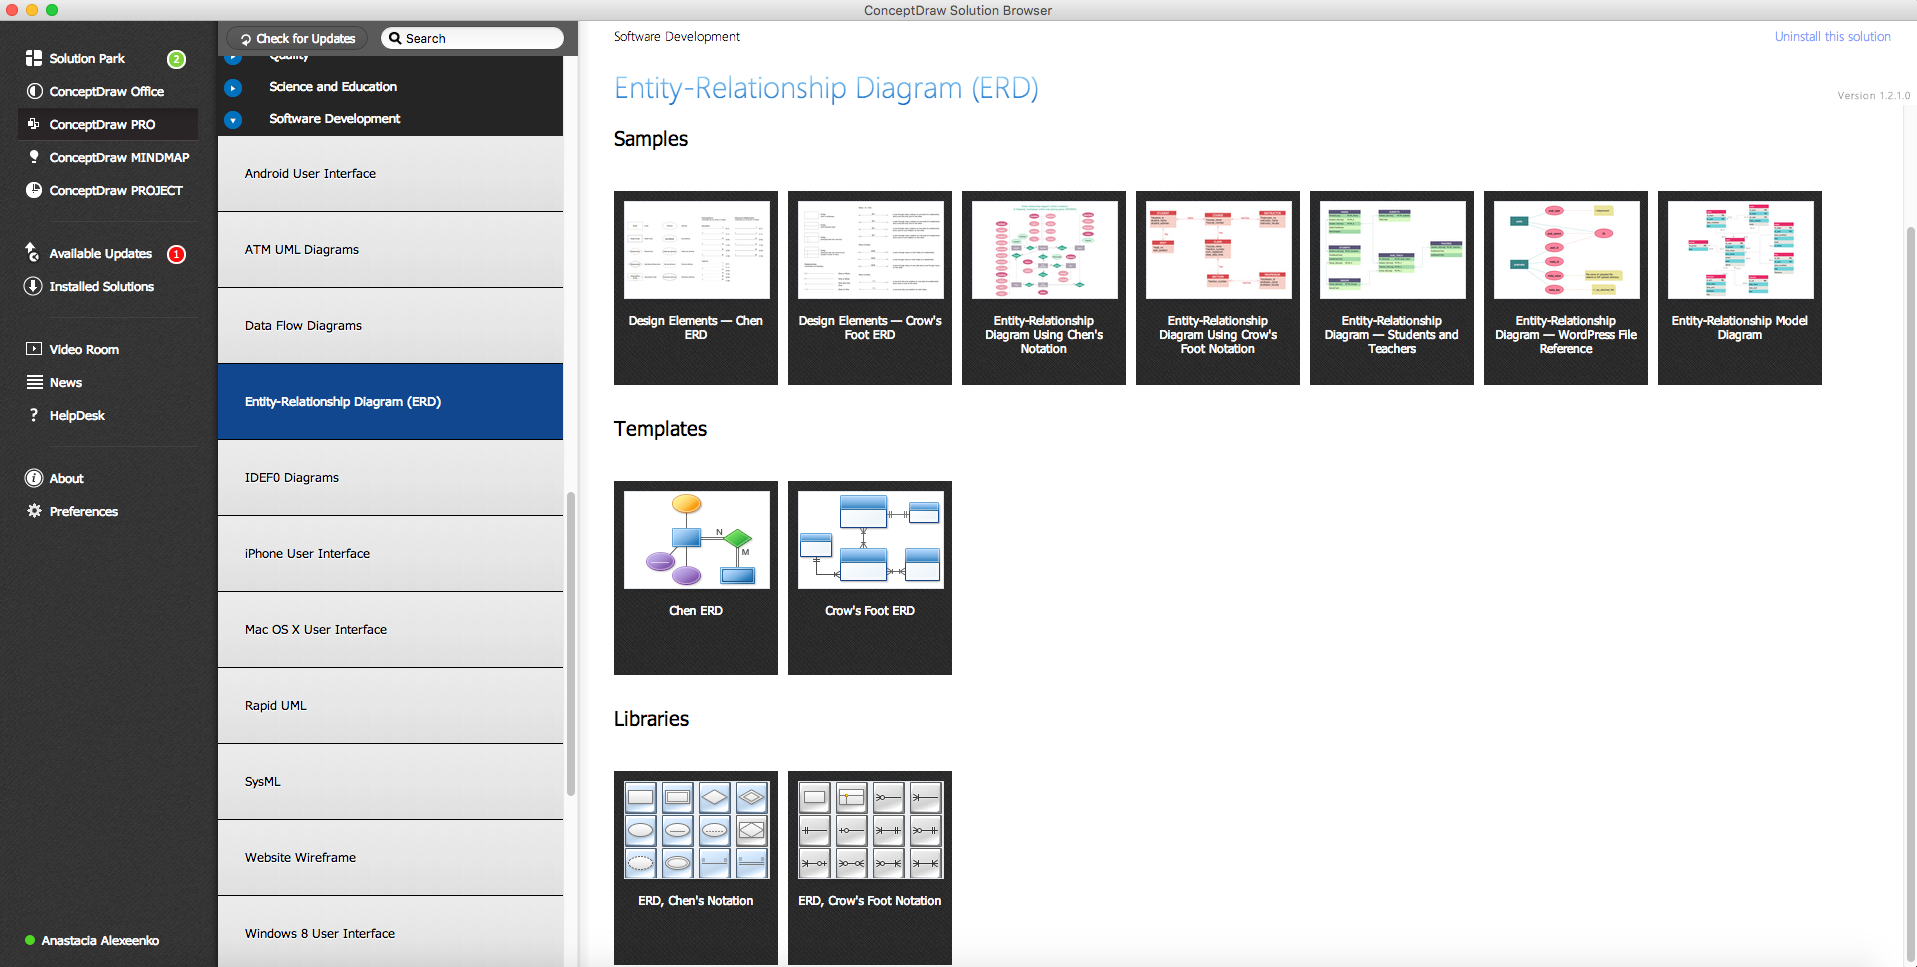 Entity-Relationship Diagram Solution in ConceptDraw STORE